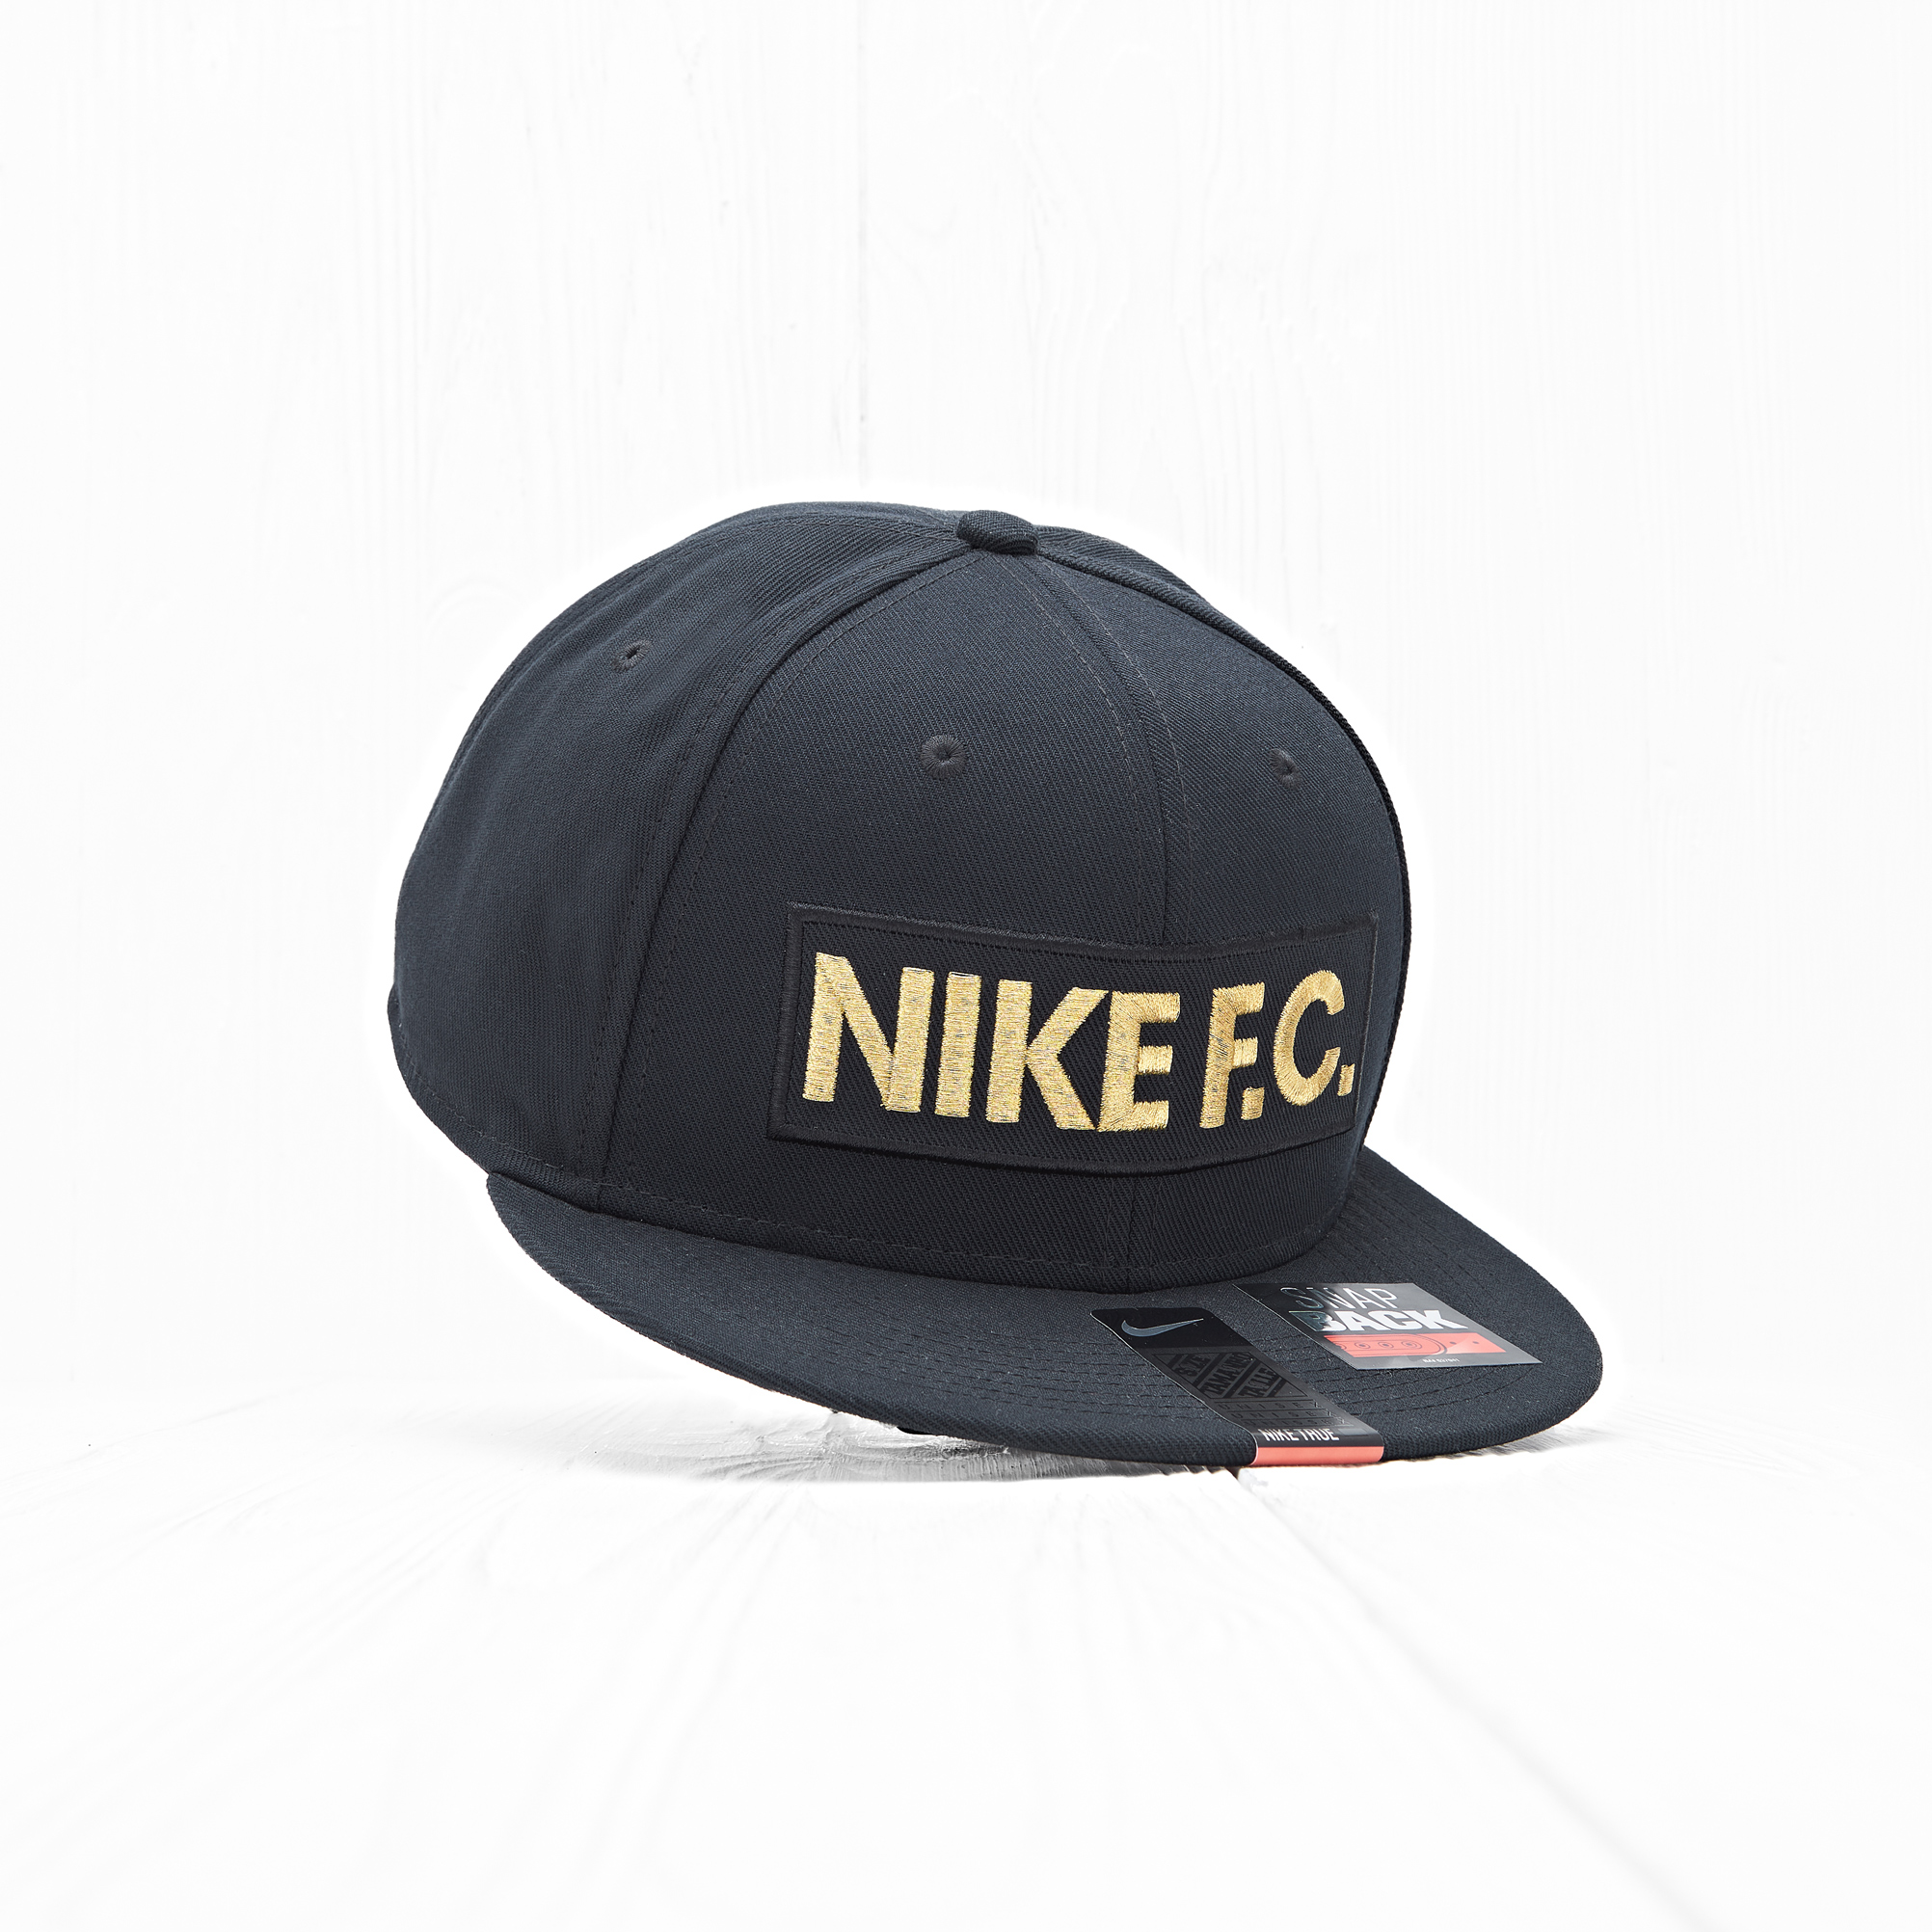 Снепбек Nike F.C. BLOCK TRUE Black